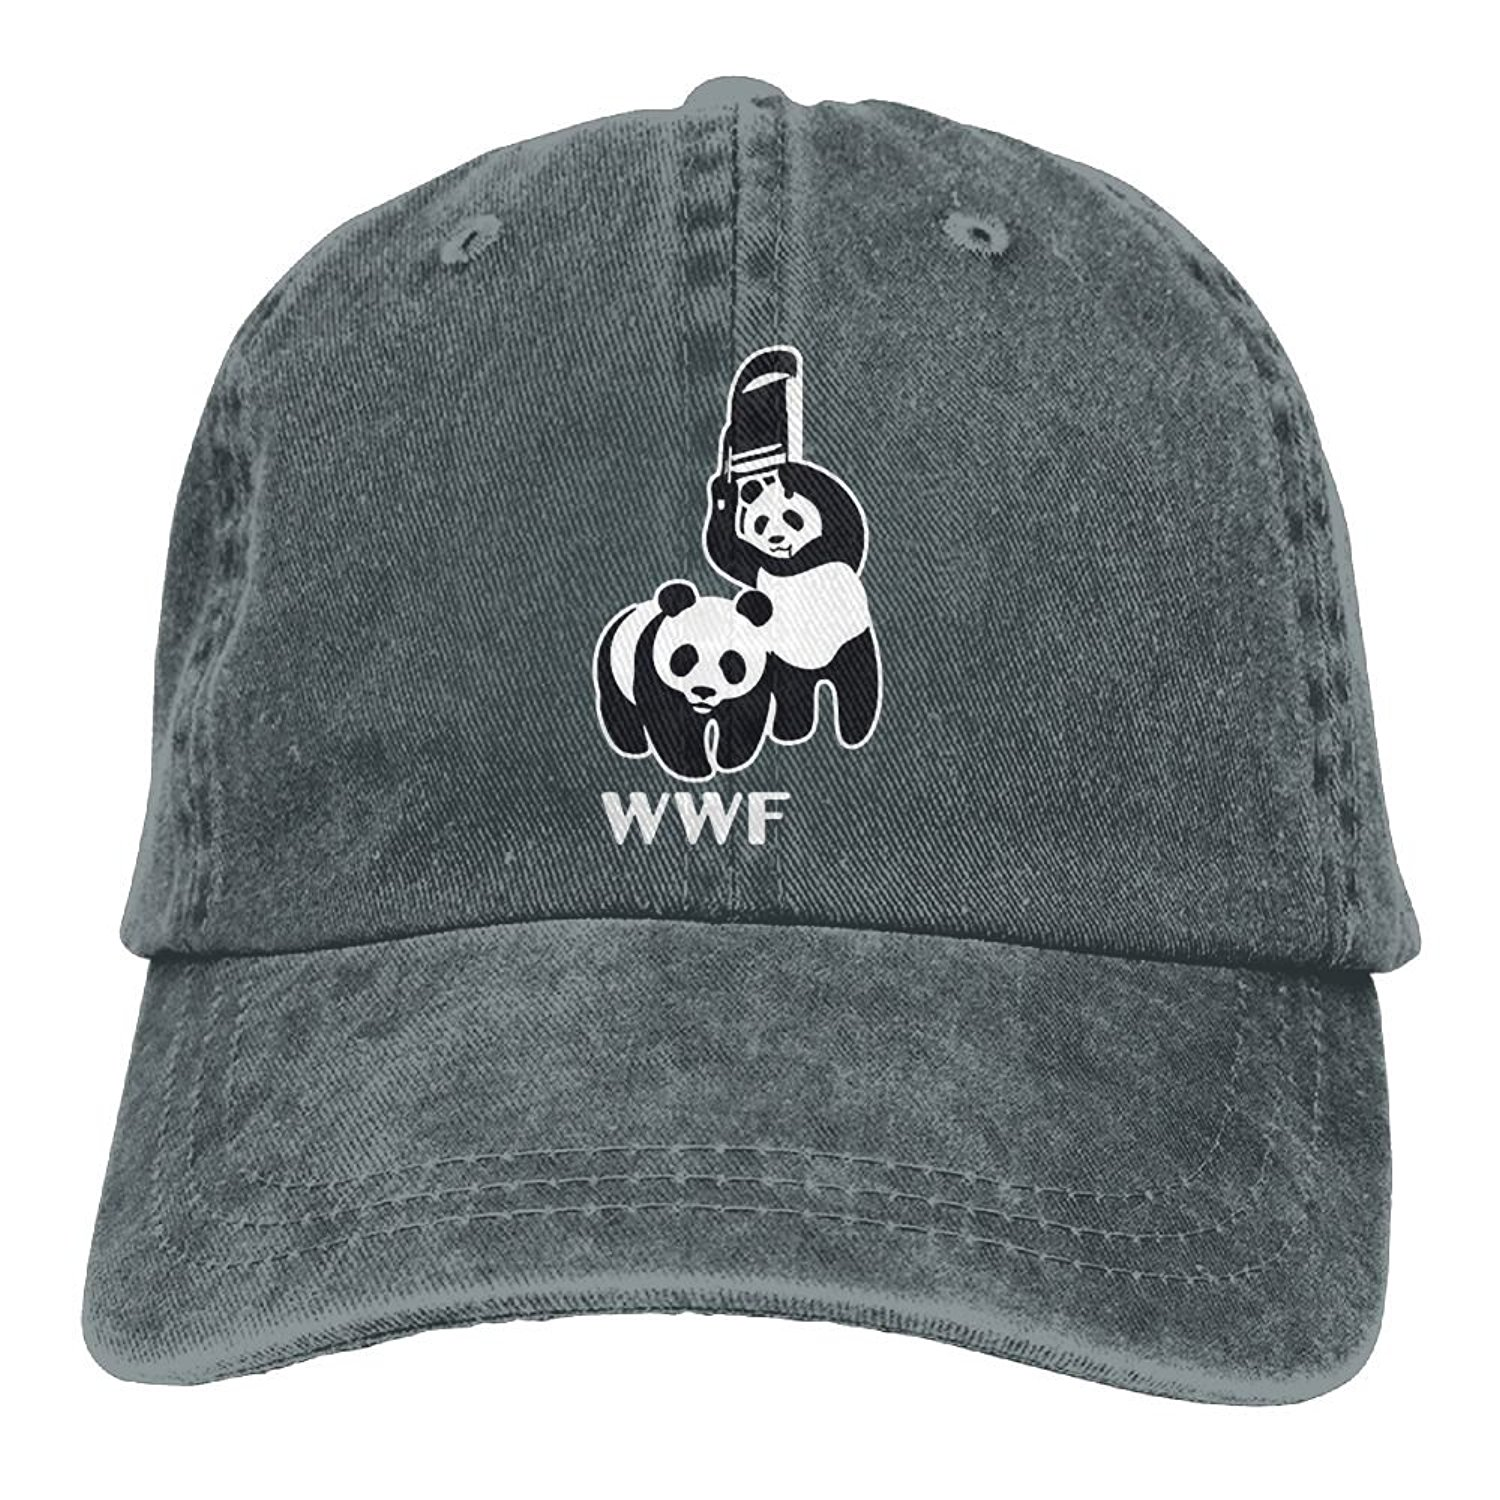 a865541185b Get Quotations · WWF Funny Panda Bear Wrestling Adult New Style COWBOY HAT